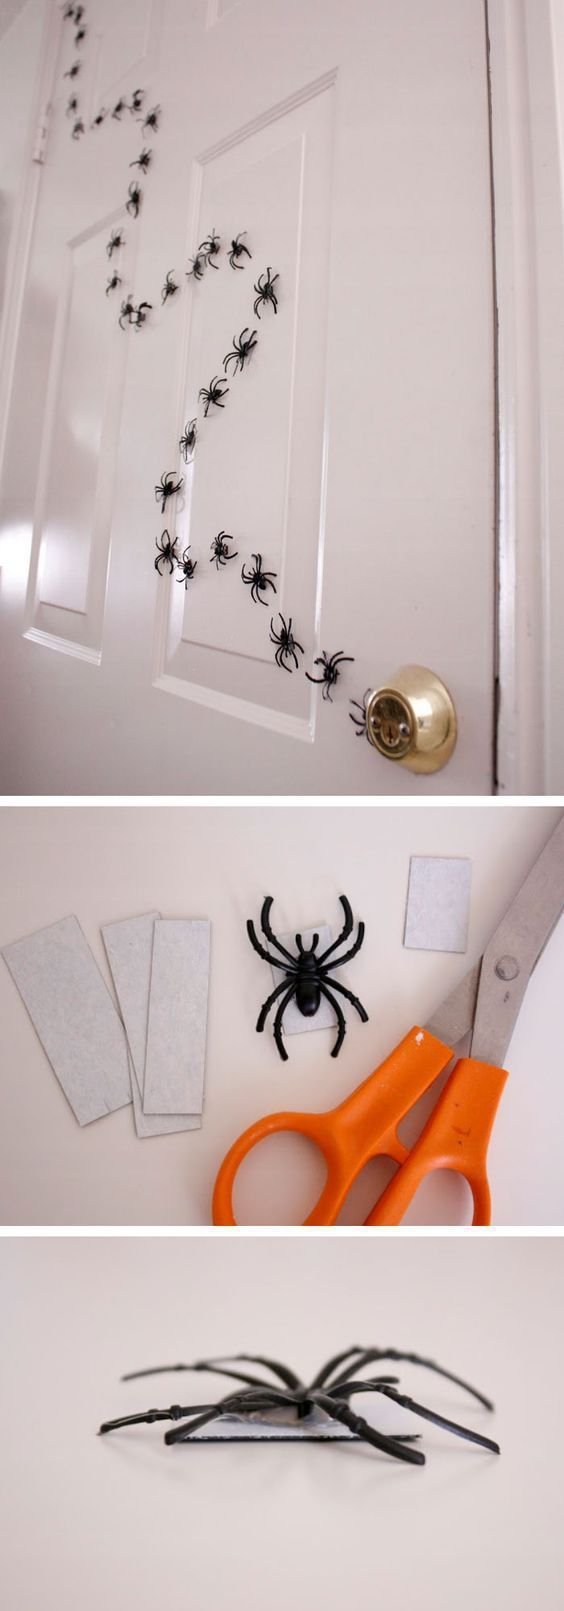 EASY and CHEAP Magnetic Halloween Spiders Decorations   Delia Creates - Spooktacular Halloween DIYs, Crafts and Projects - The BEST Do it Yourself Halloween Decorations